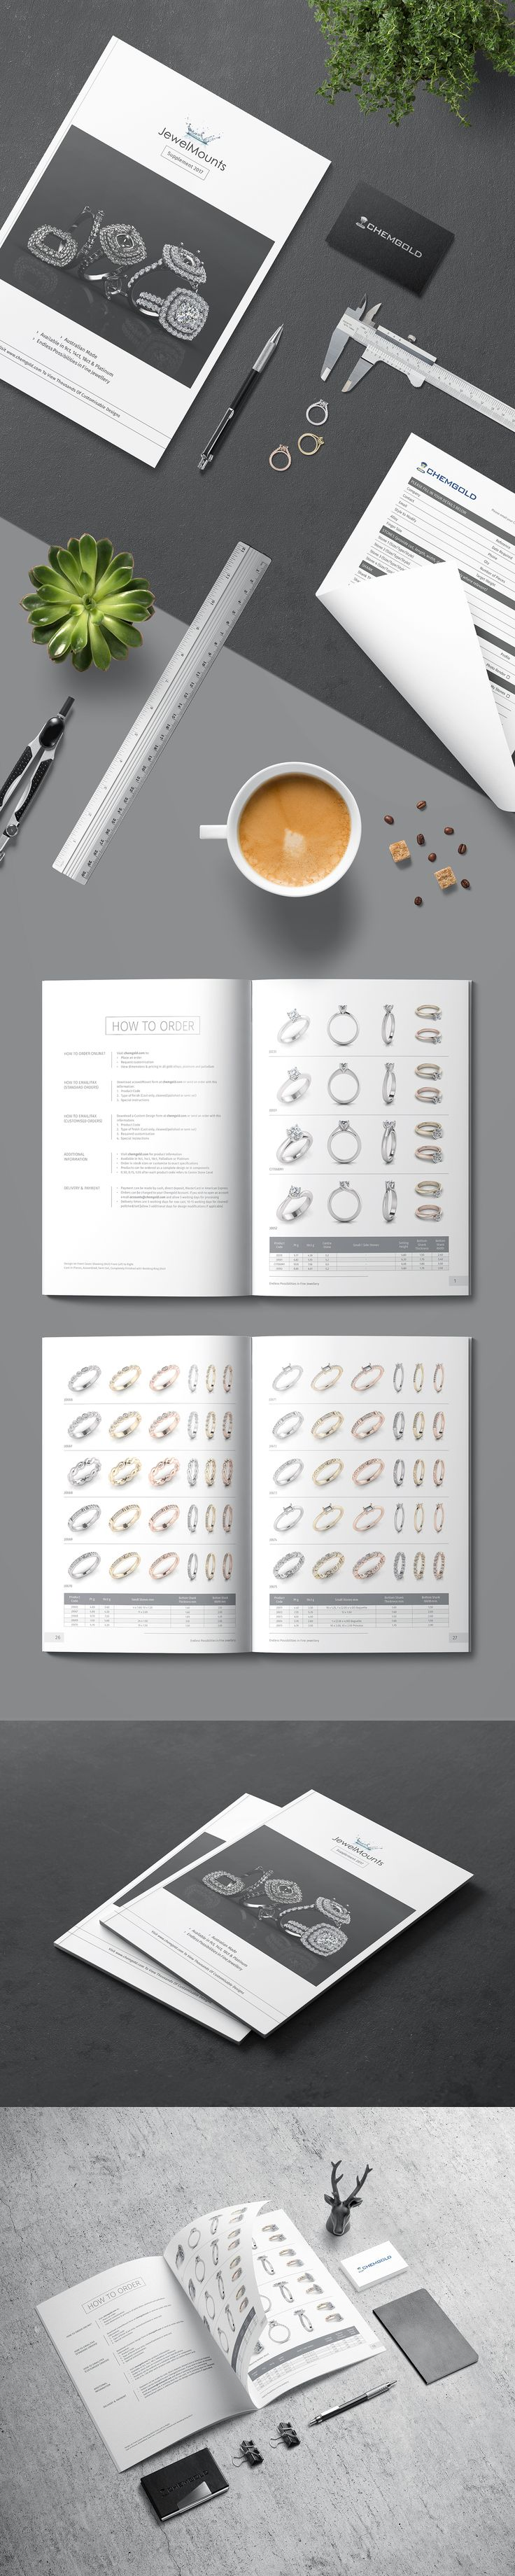 From Studio: Clean minimal catalog for Chemgold, classic Australian made fine jewellery based in Alexandria, New South Wales. Catalog itself consist of 36 minimal pages on A4 created with Adobe InDesign CC. #australia #booklet #brand #brochure #catalog #clean #creativestudio #design #gold #graphic #graphicdesign #indesign #jewelry #layout #minimal #minimalism #minimalist #mockup #print #printdesign #professional #project #rings #studio #wedder #wedding #white #work